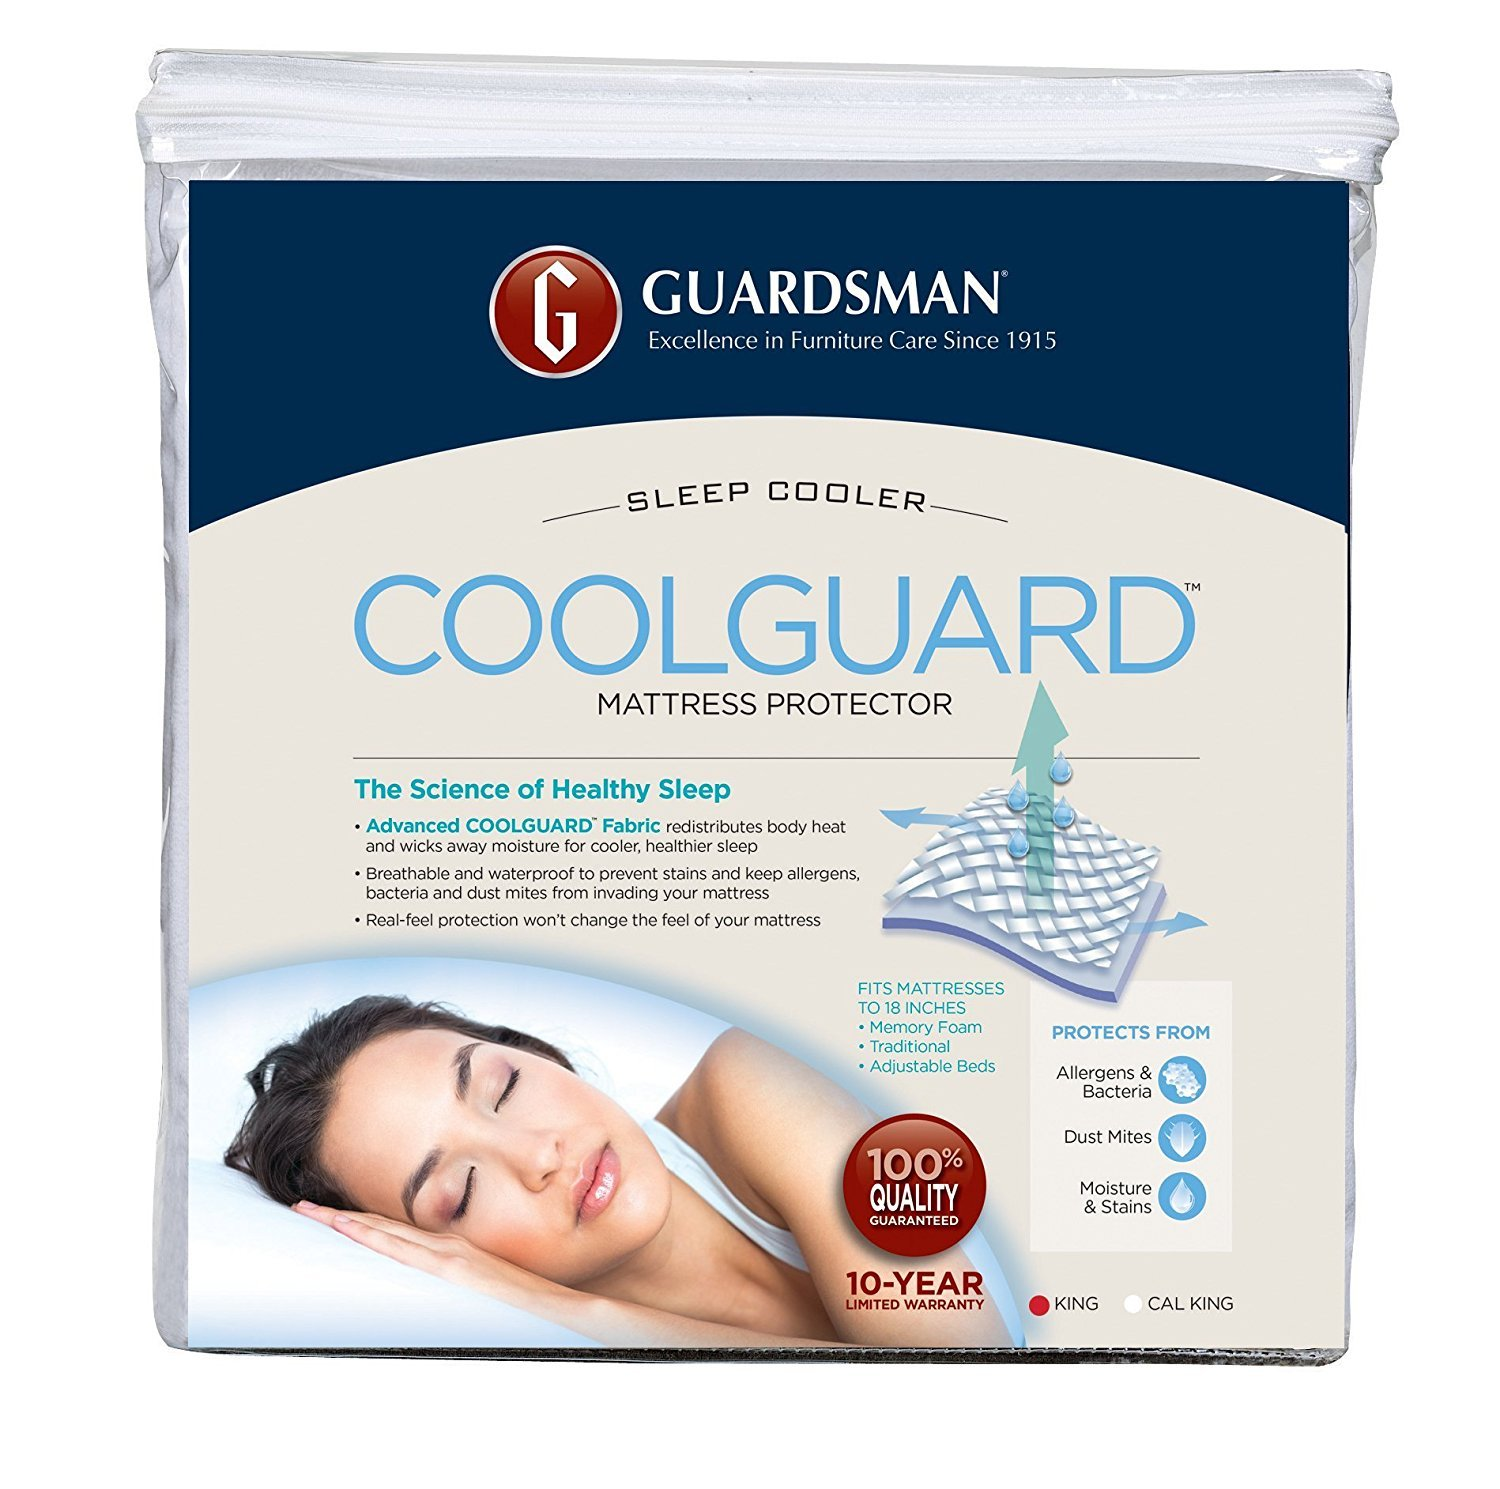 Guardsman Cool Guard Waterproof Mattress Protector - King - Keep Cool, Protect Against Stains, Spills, Mishaps - 10 Year Warranty - Reusable(Packaging May Vary) by Guardsman (Image #2)